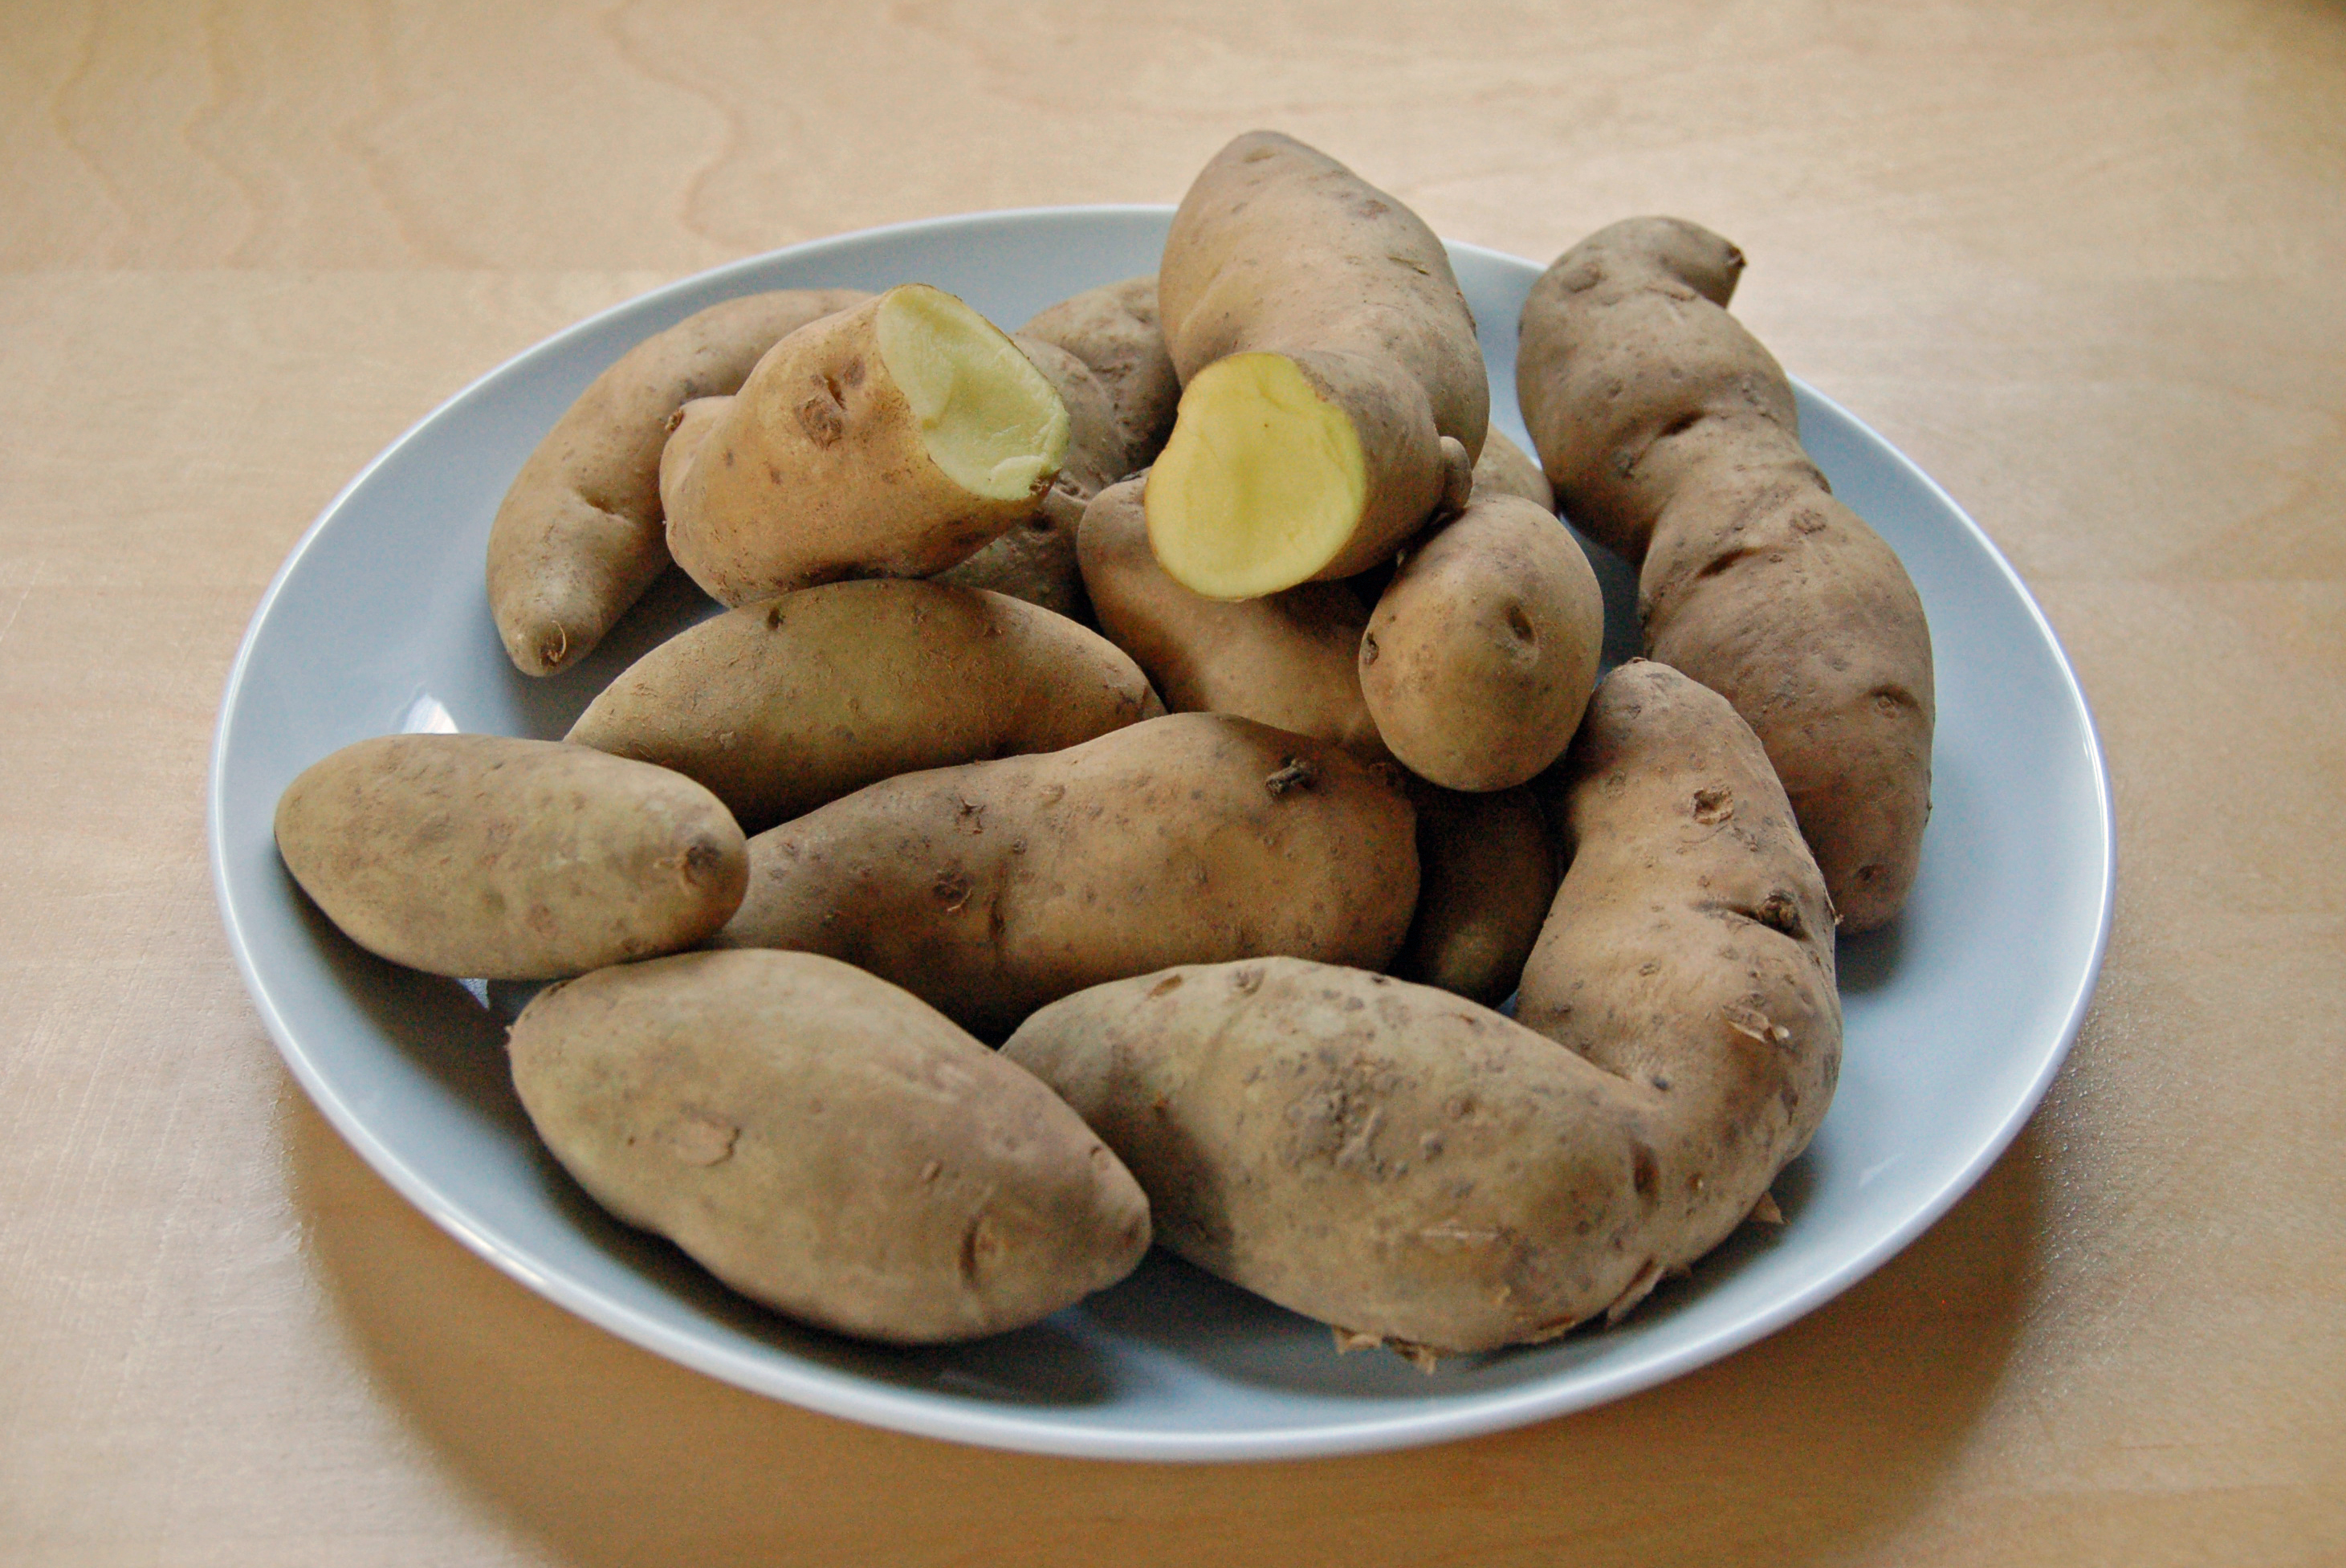 osmosis in potato course work Coursework writing service essay  osmosis potential in potatoes biology  osmosis is a special type of diffusion which involves the movement of water molecules .